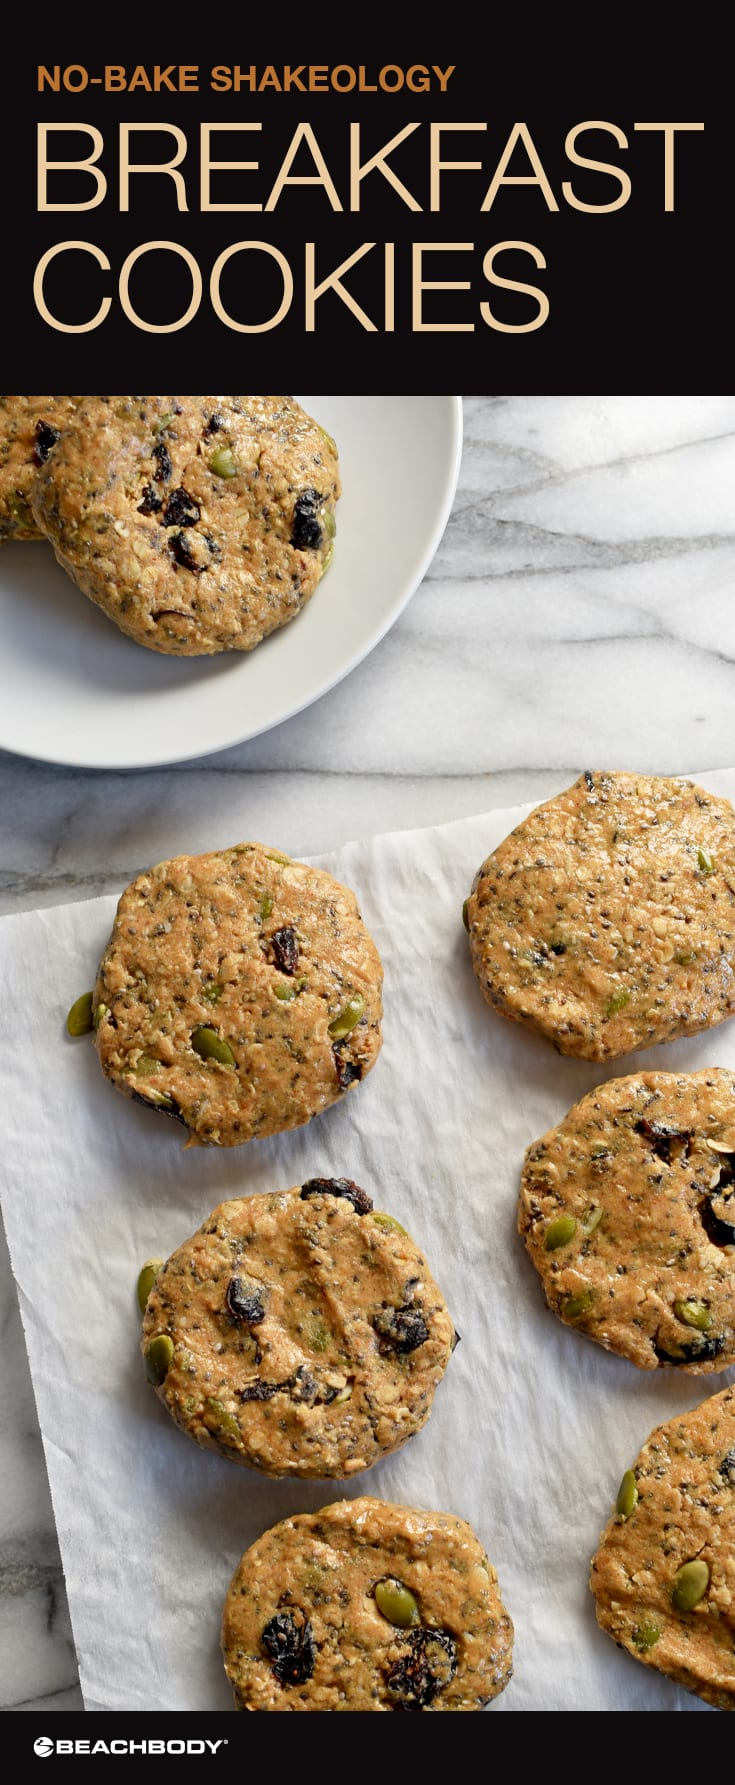 No-Bake Shakeology Breakfast Cookies